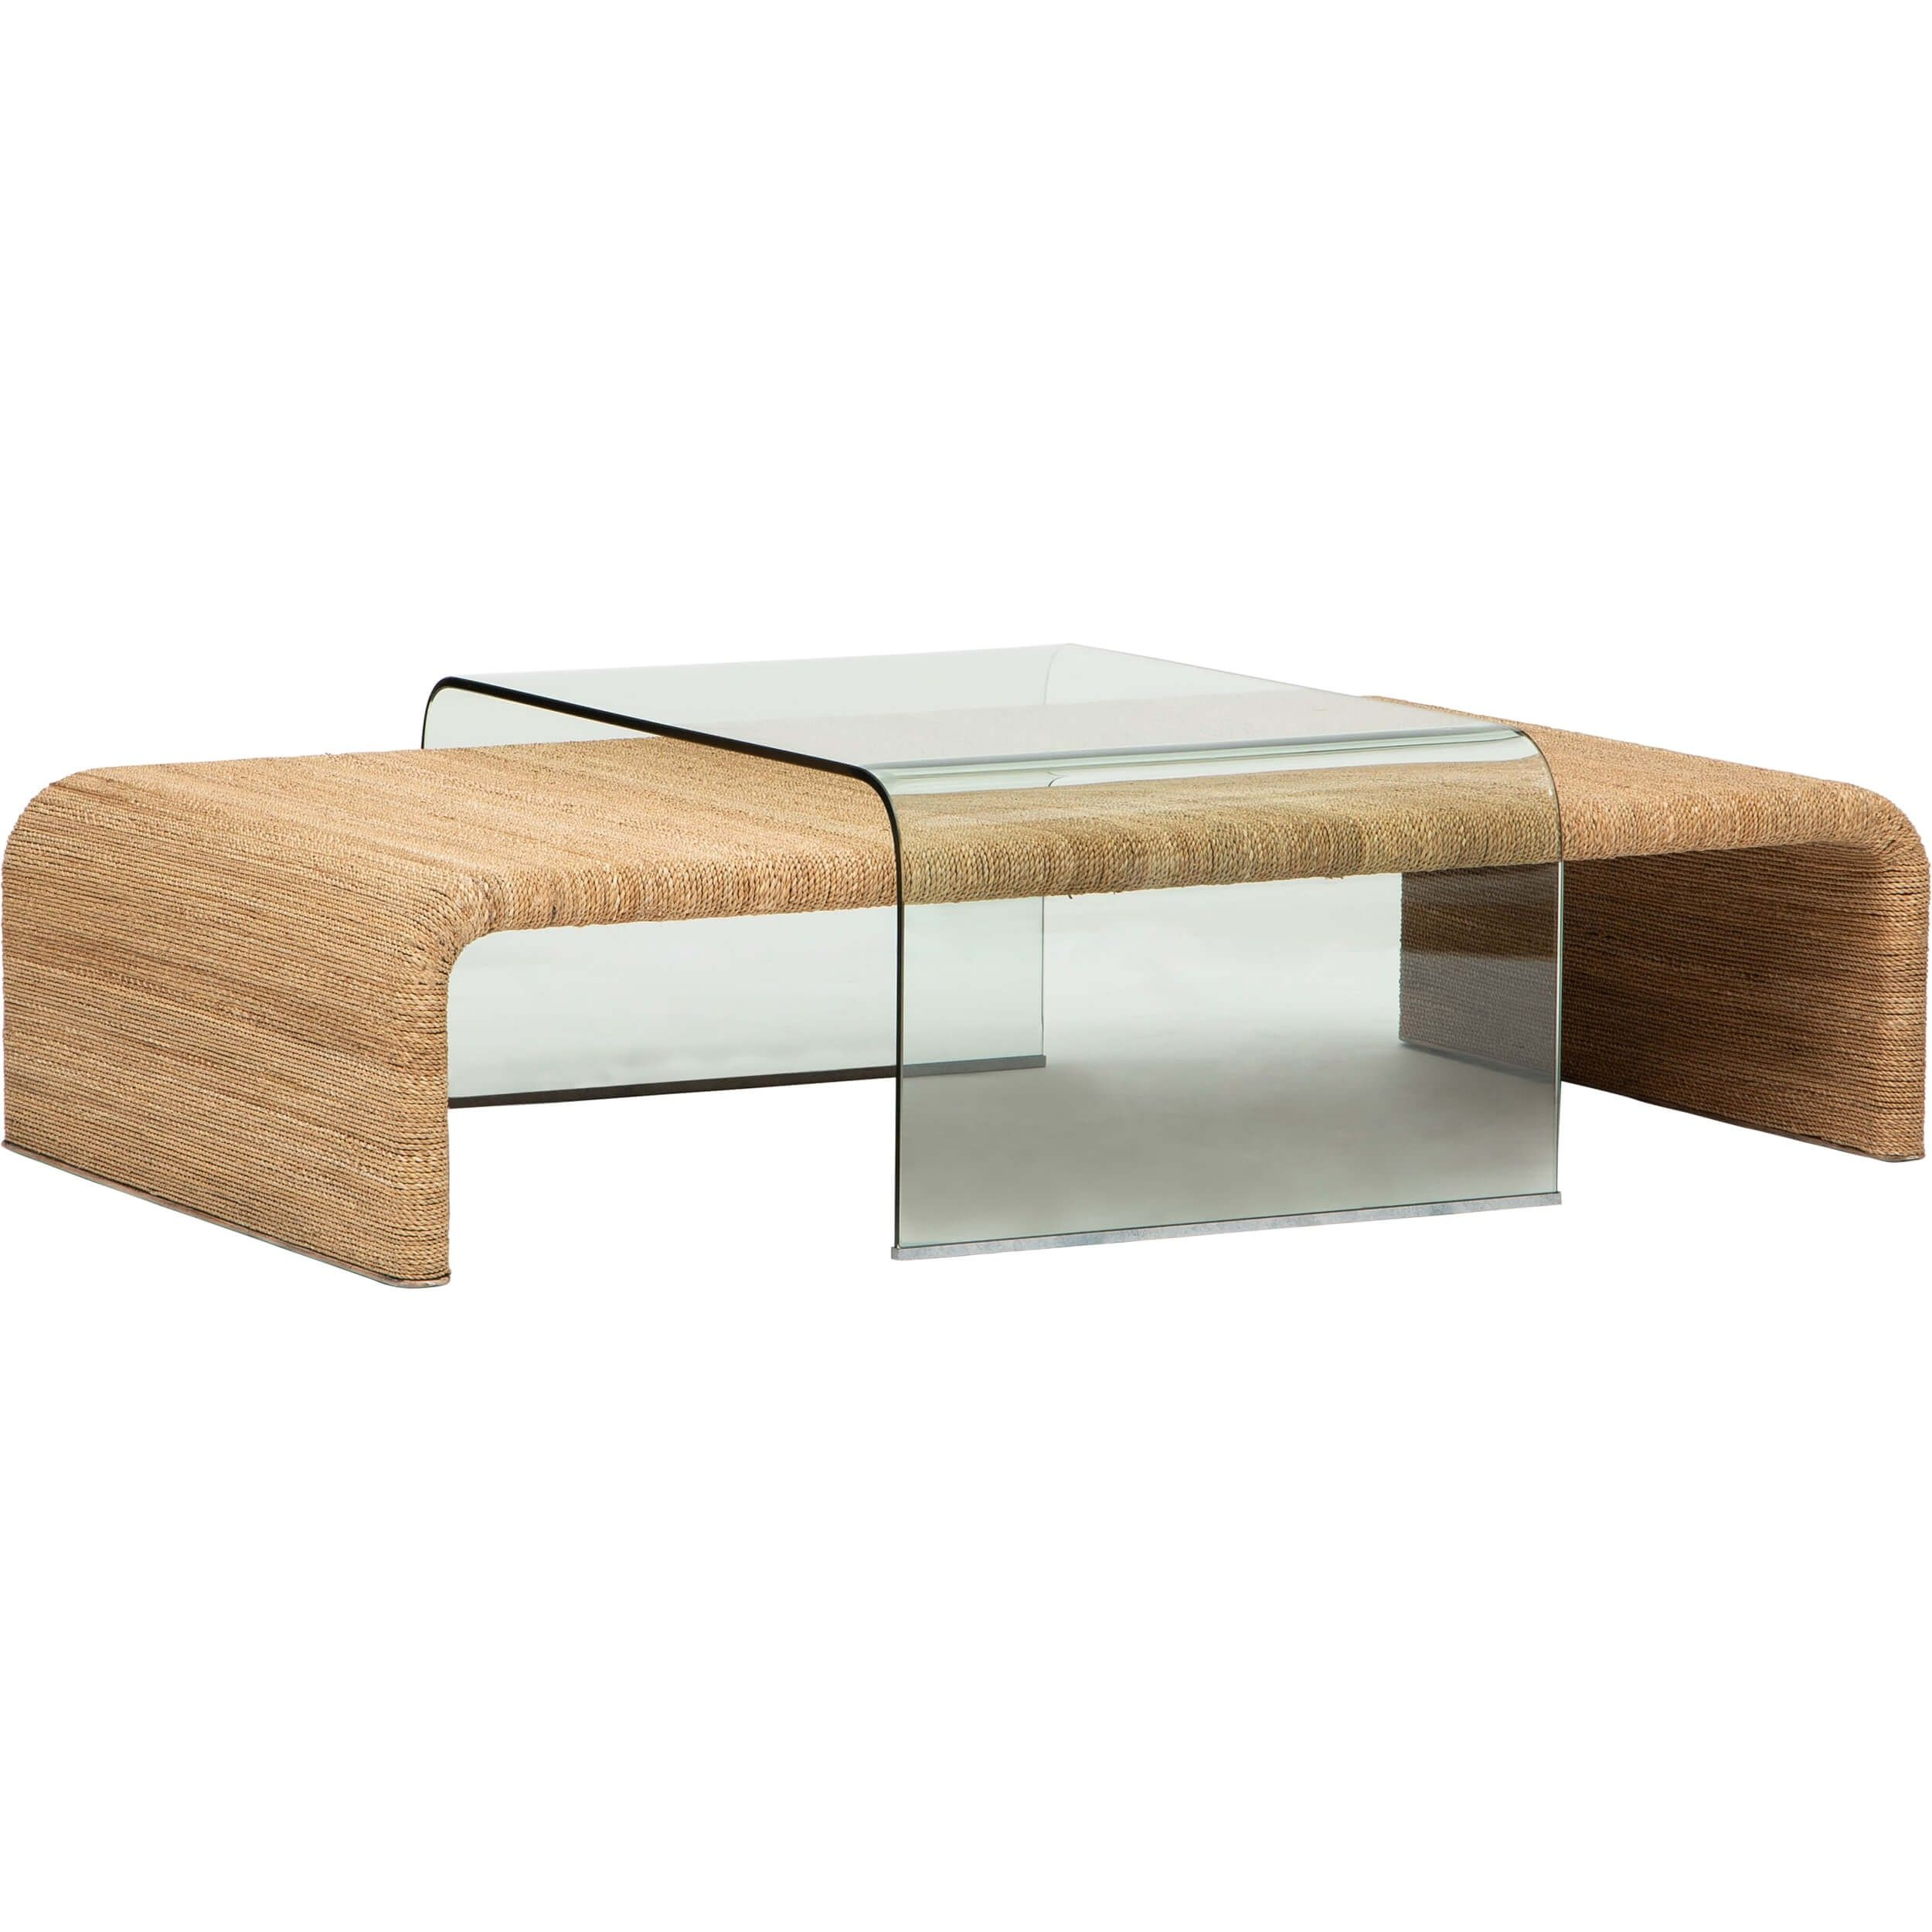 Amani Rope And Glass Coffee Table Coffee Table Tempered Glass Table Top Glass Coffee Table [ 2500 x 2500 Pixel ]